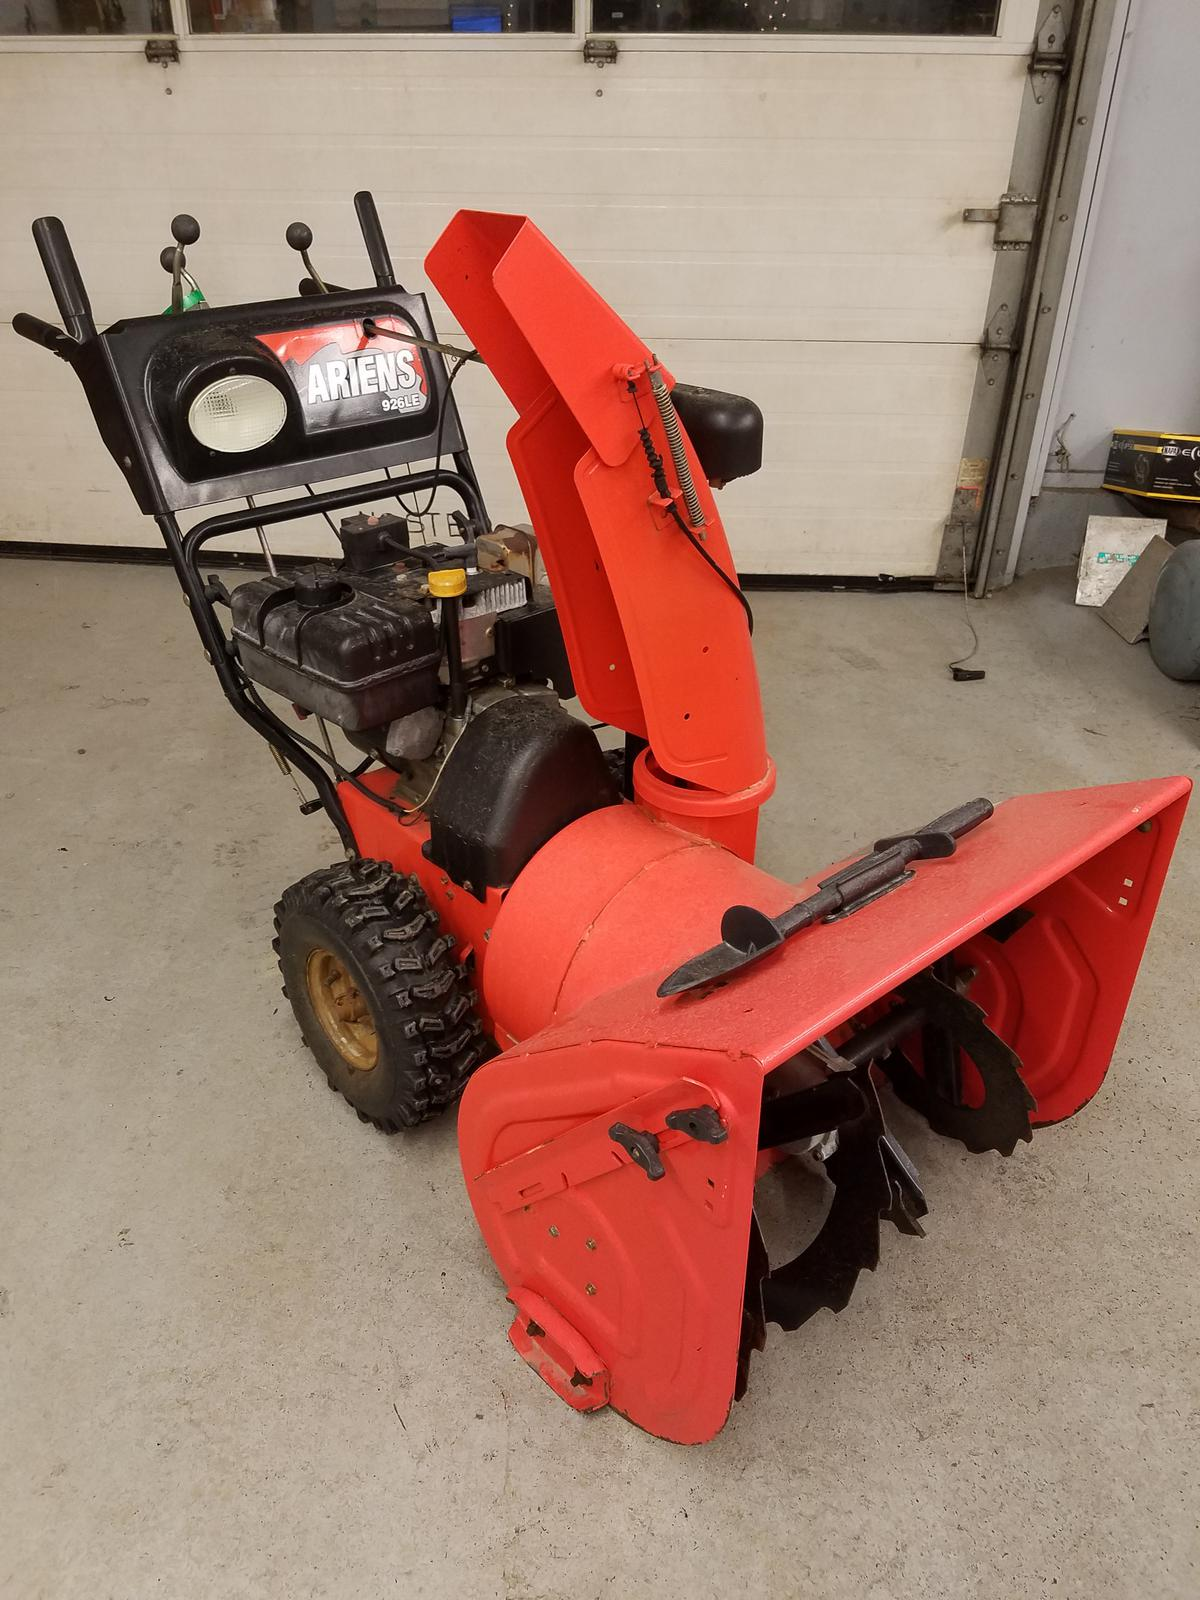 Ariens 926001 for sale in Stormville, NY | Brady's Power Equipment Inc.  (845) 221-0222